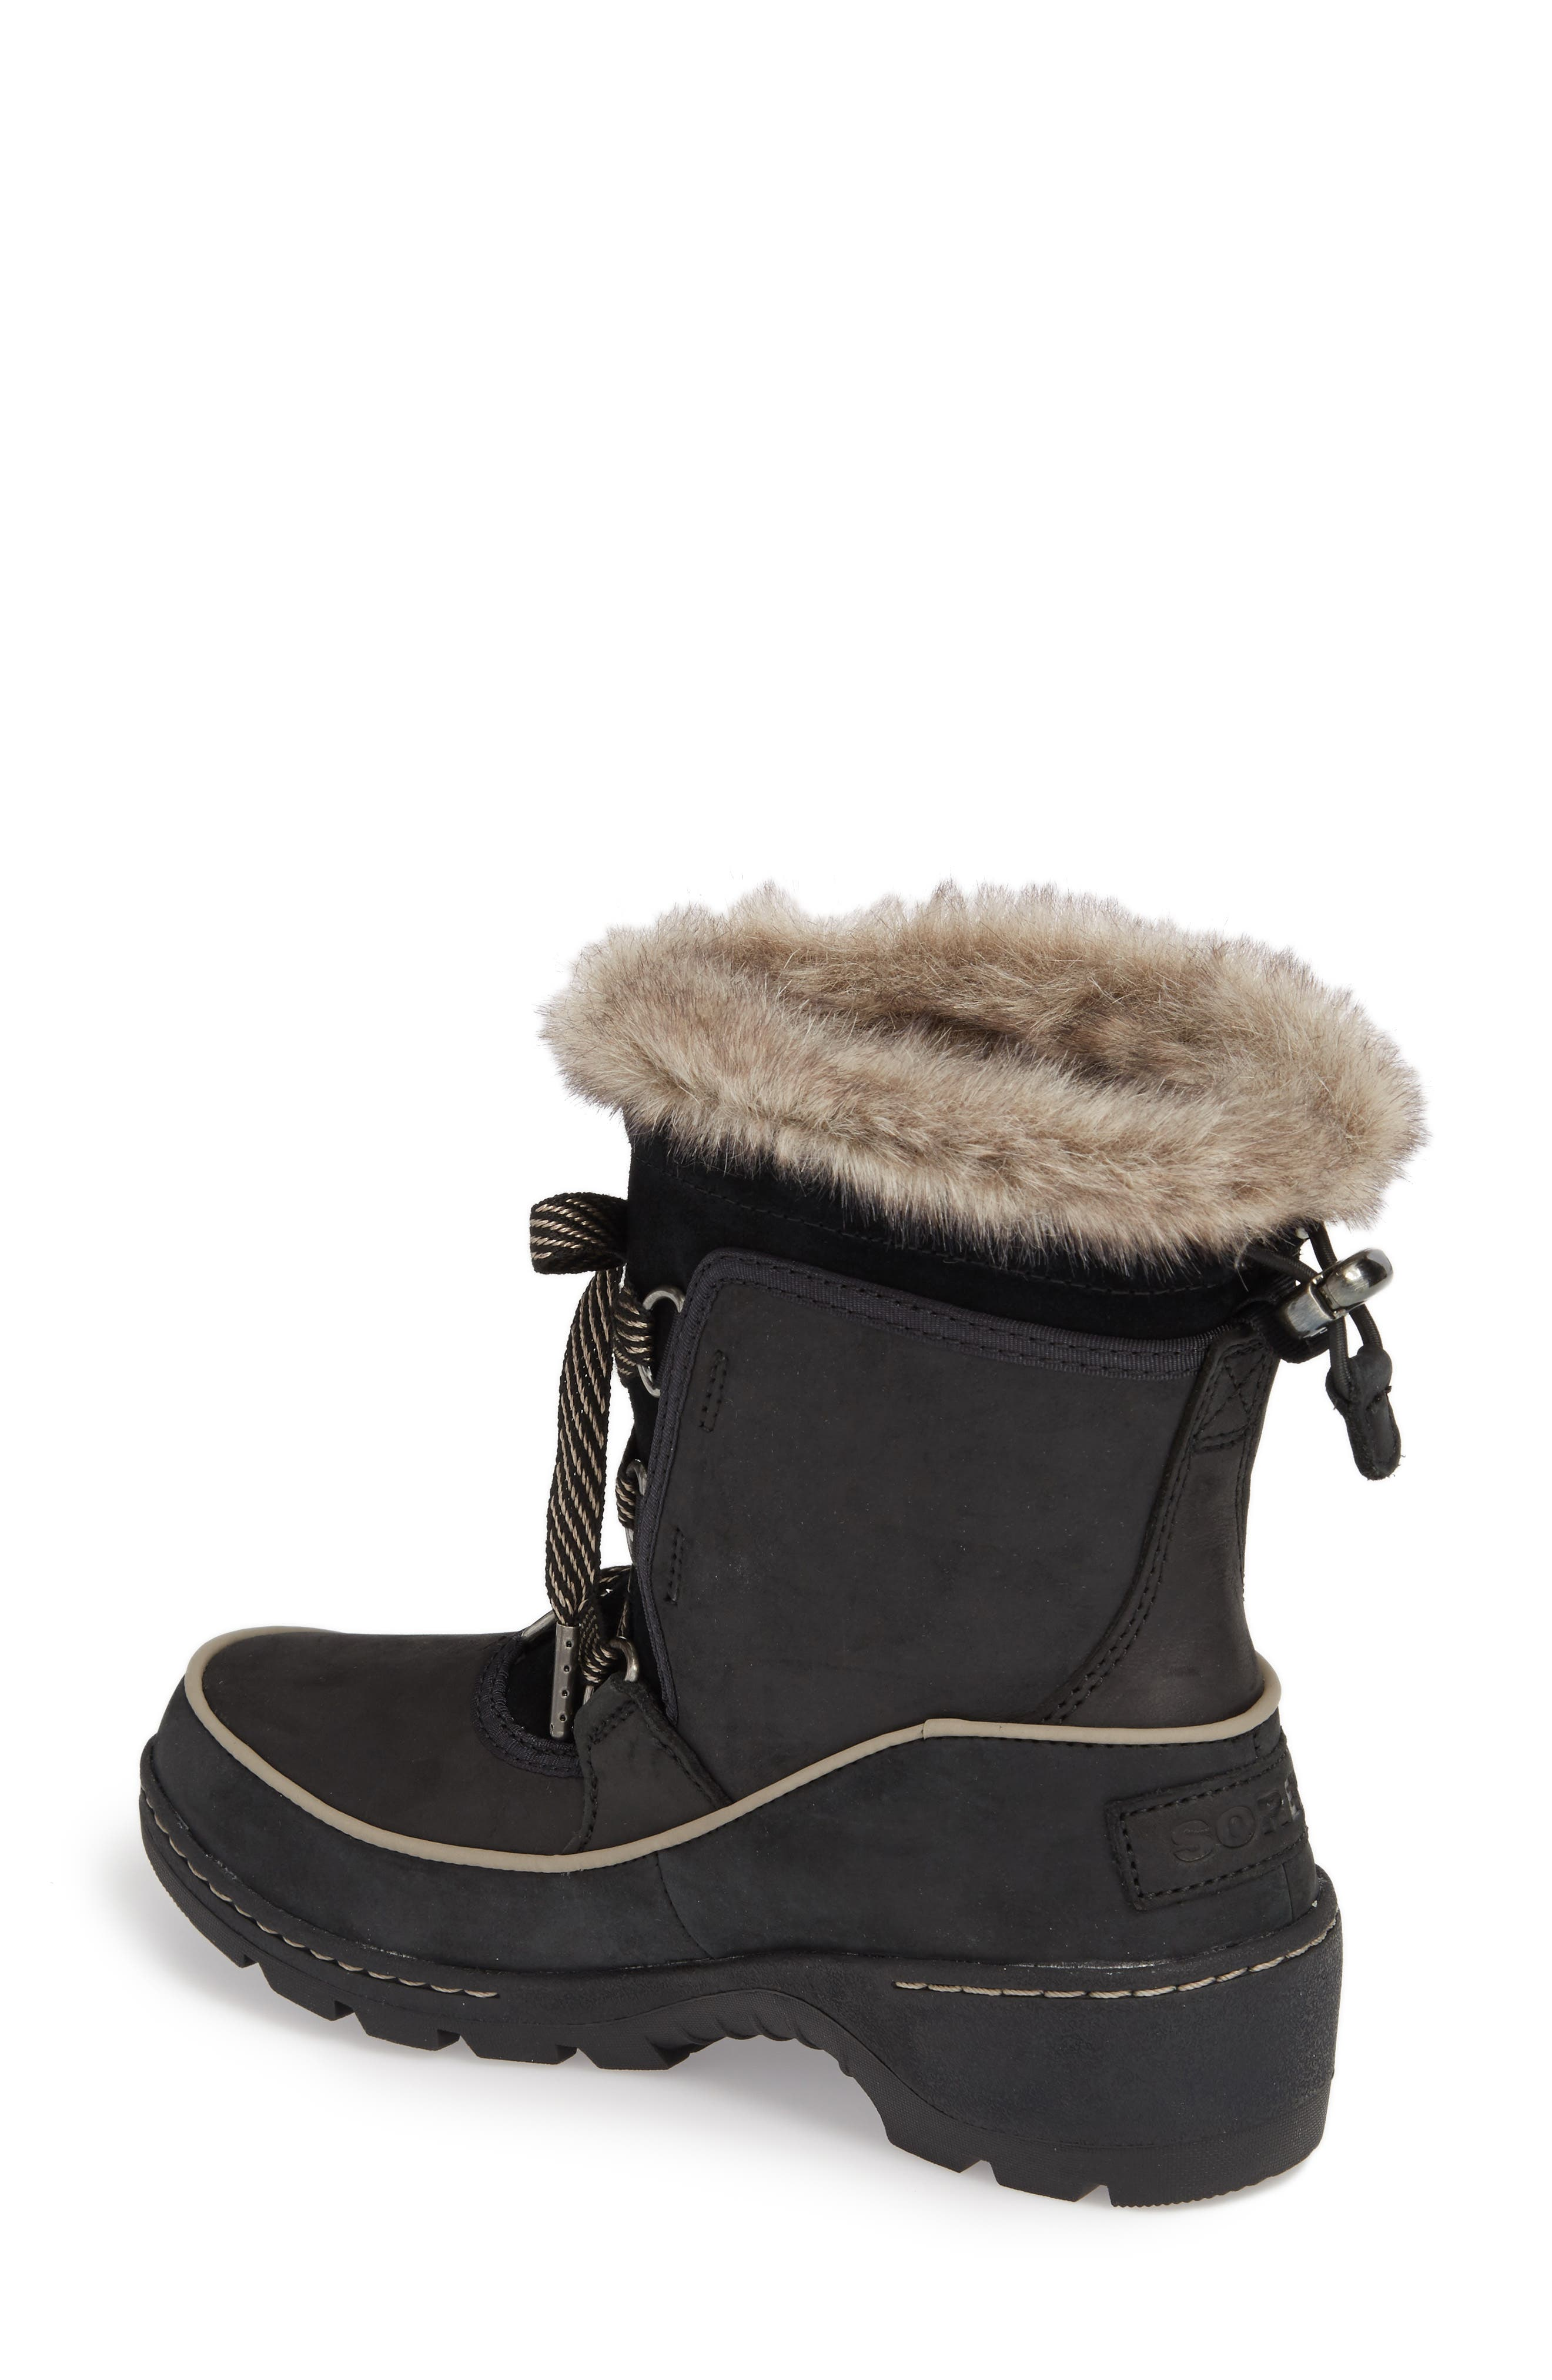 Tivoli II Insulated Winter Boot with Faux Fur Trim,                             Alternate thumbnail 2, color,                             Black/ Kettle